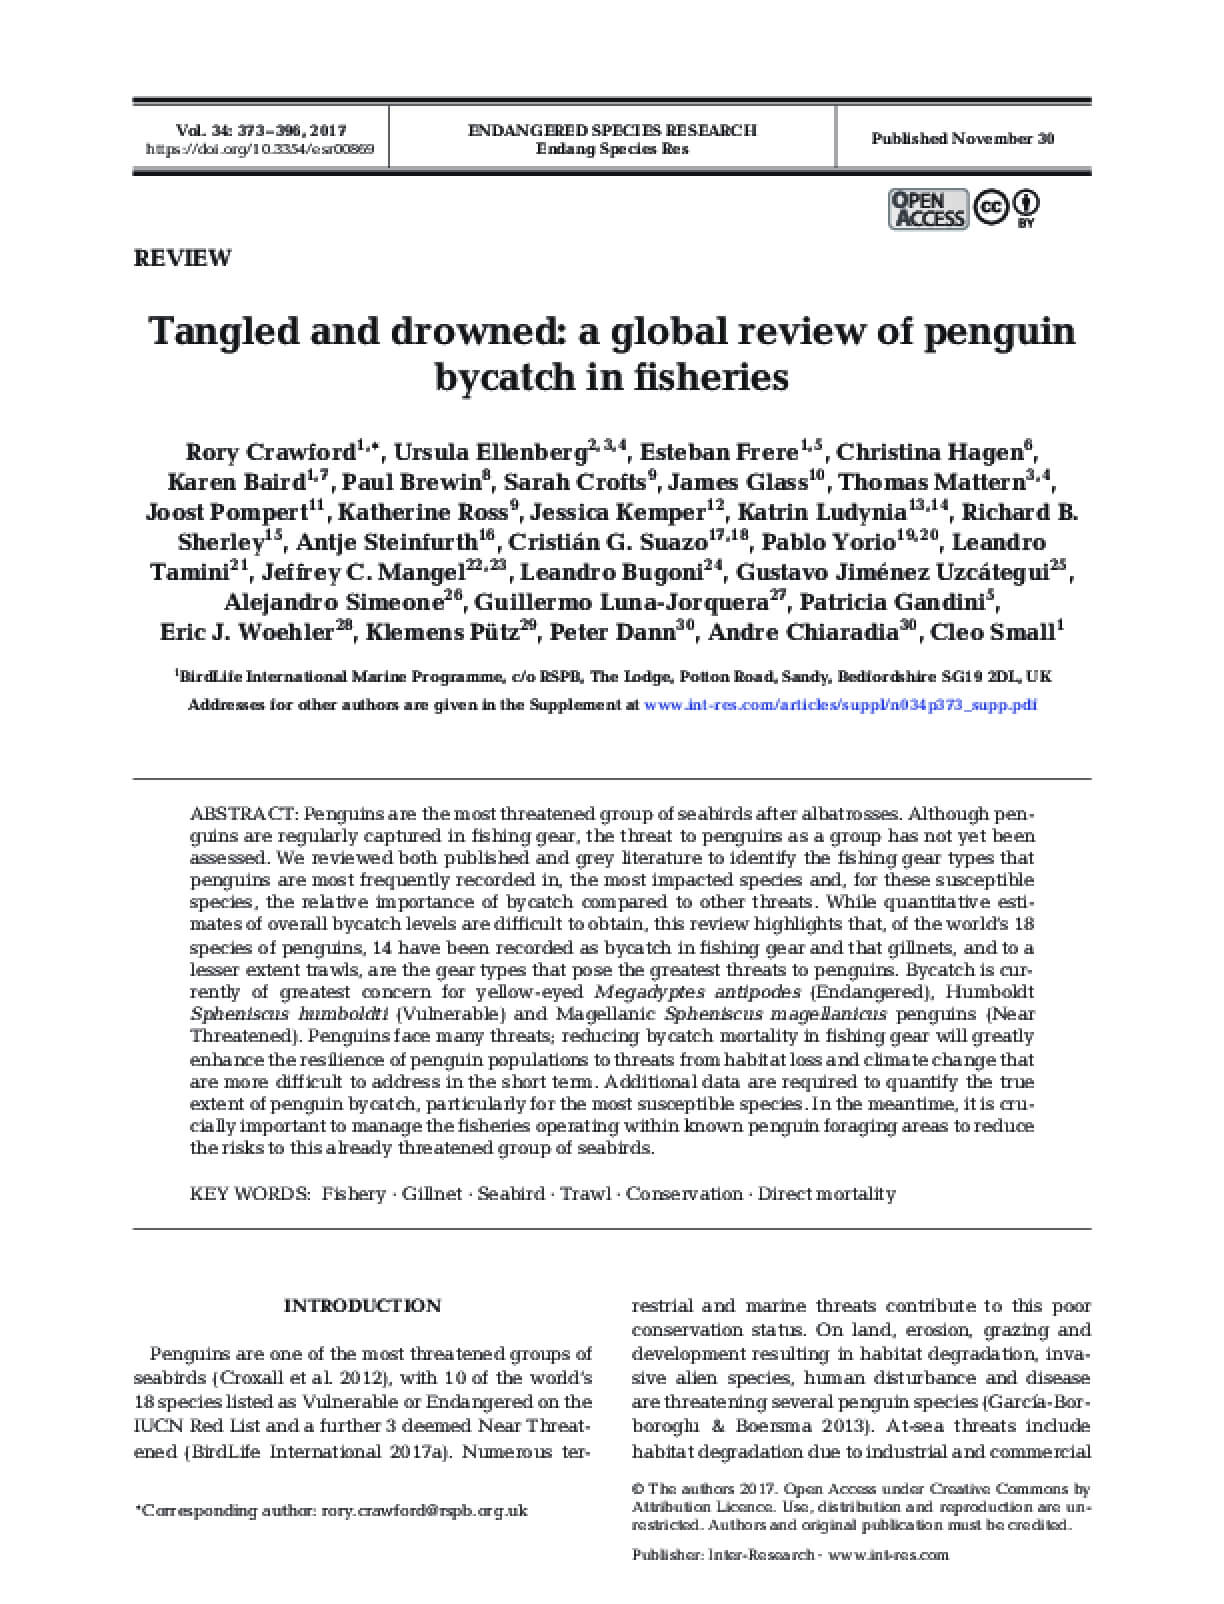 Tangled and drowned: a global review of penguin bycatch in fisheries